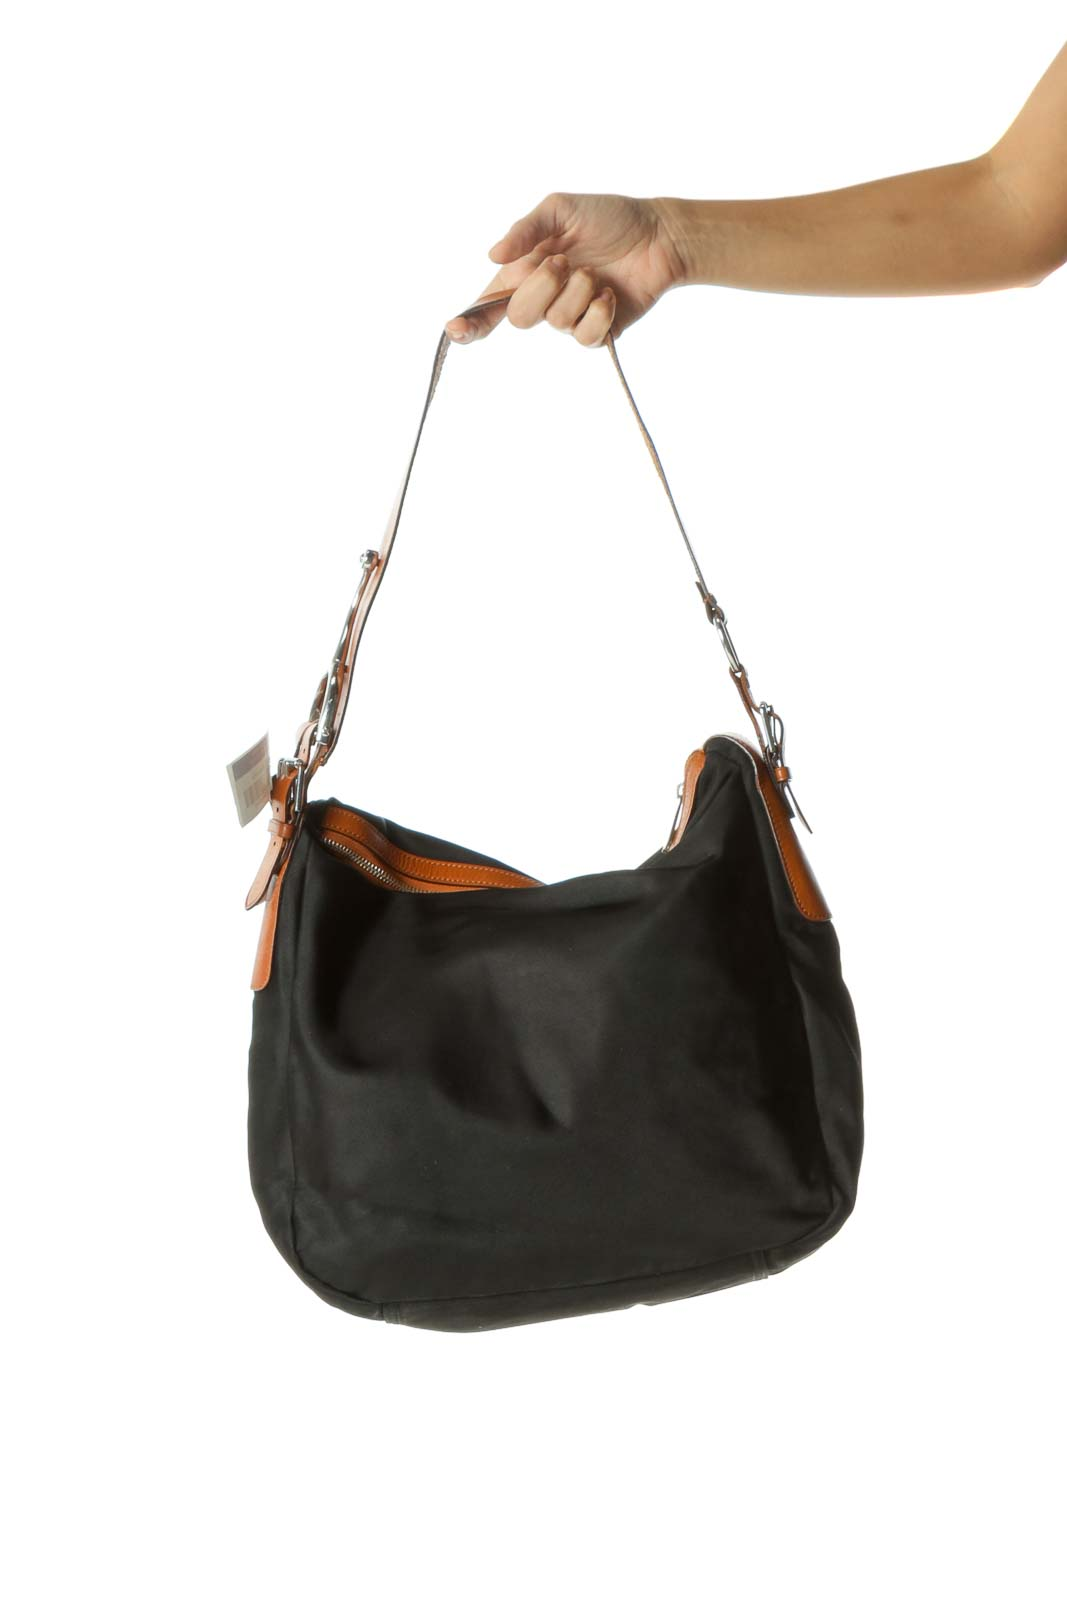 Black Nylon Shoulder Bag with Leather Straps